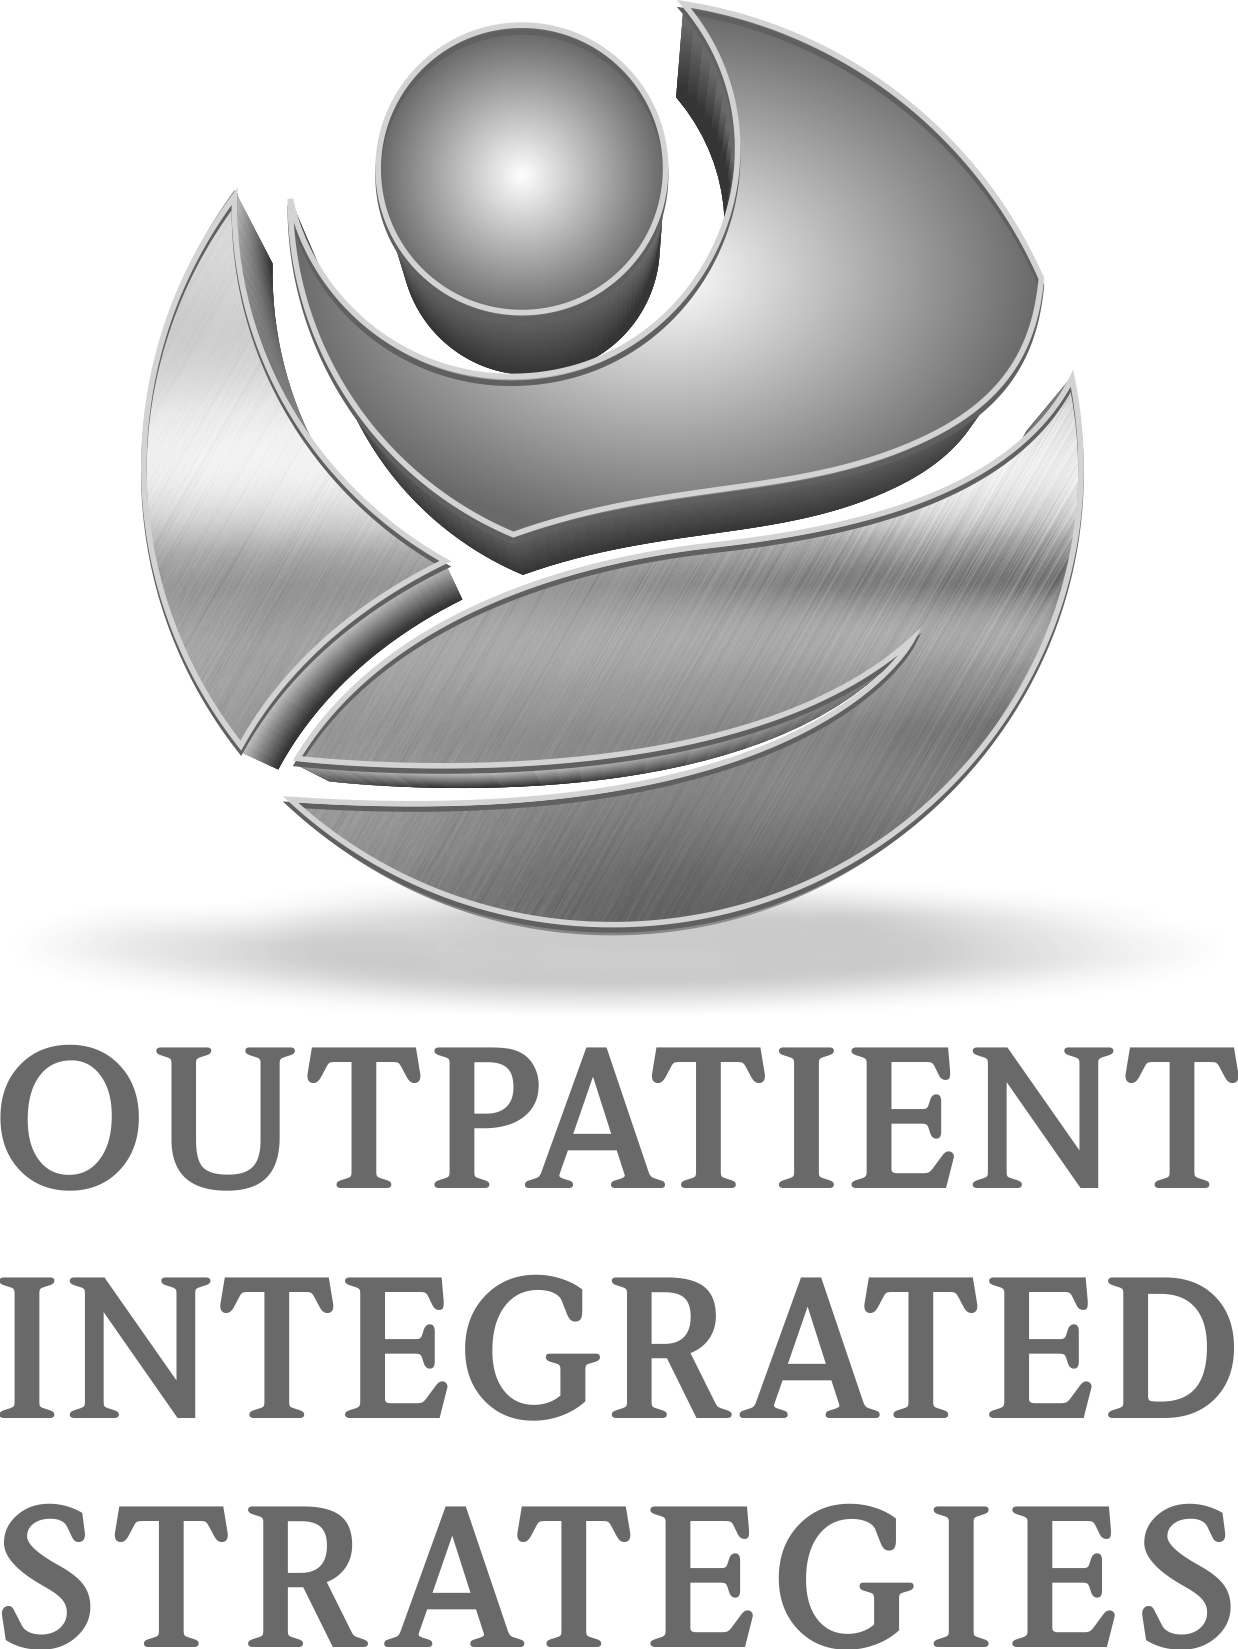 Outpatient Integrated Strategies